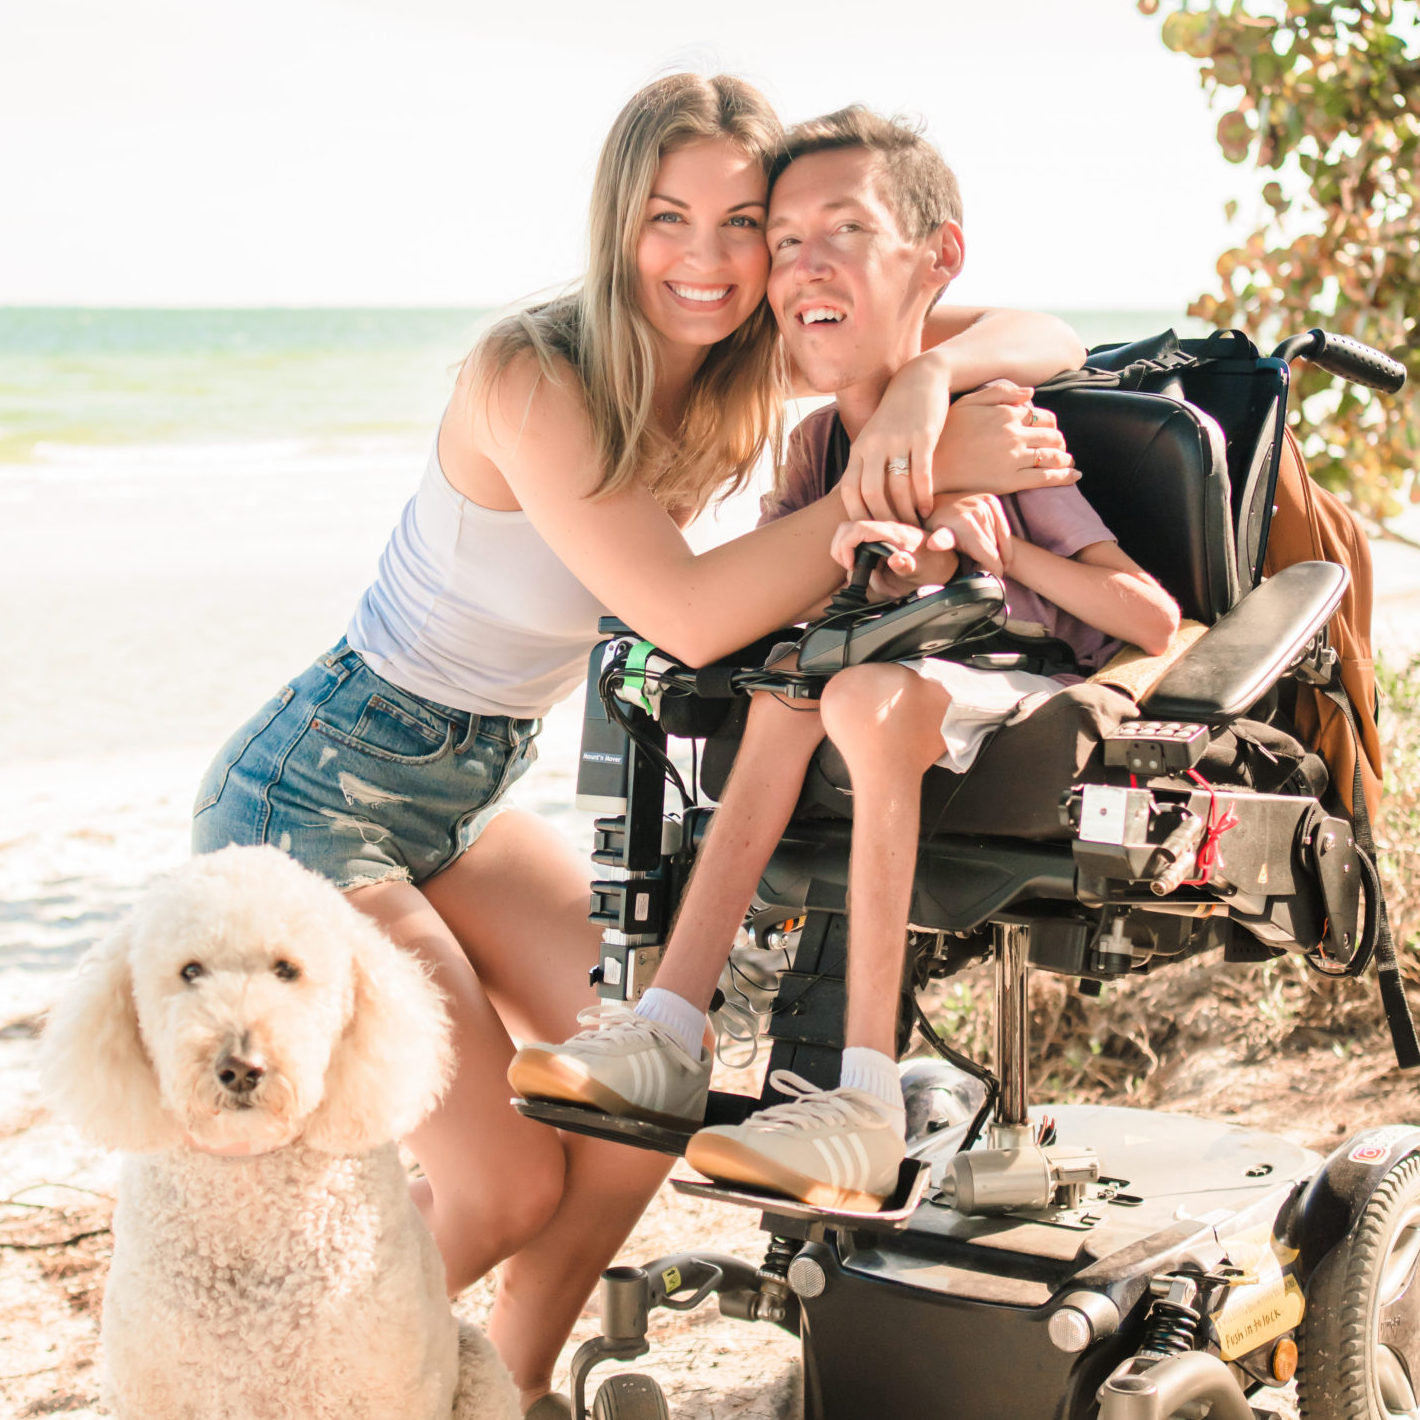 Photo of Hannah, Shane, and their Goldendoodle on the beach.